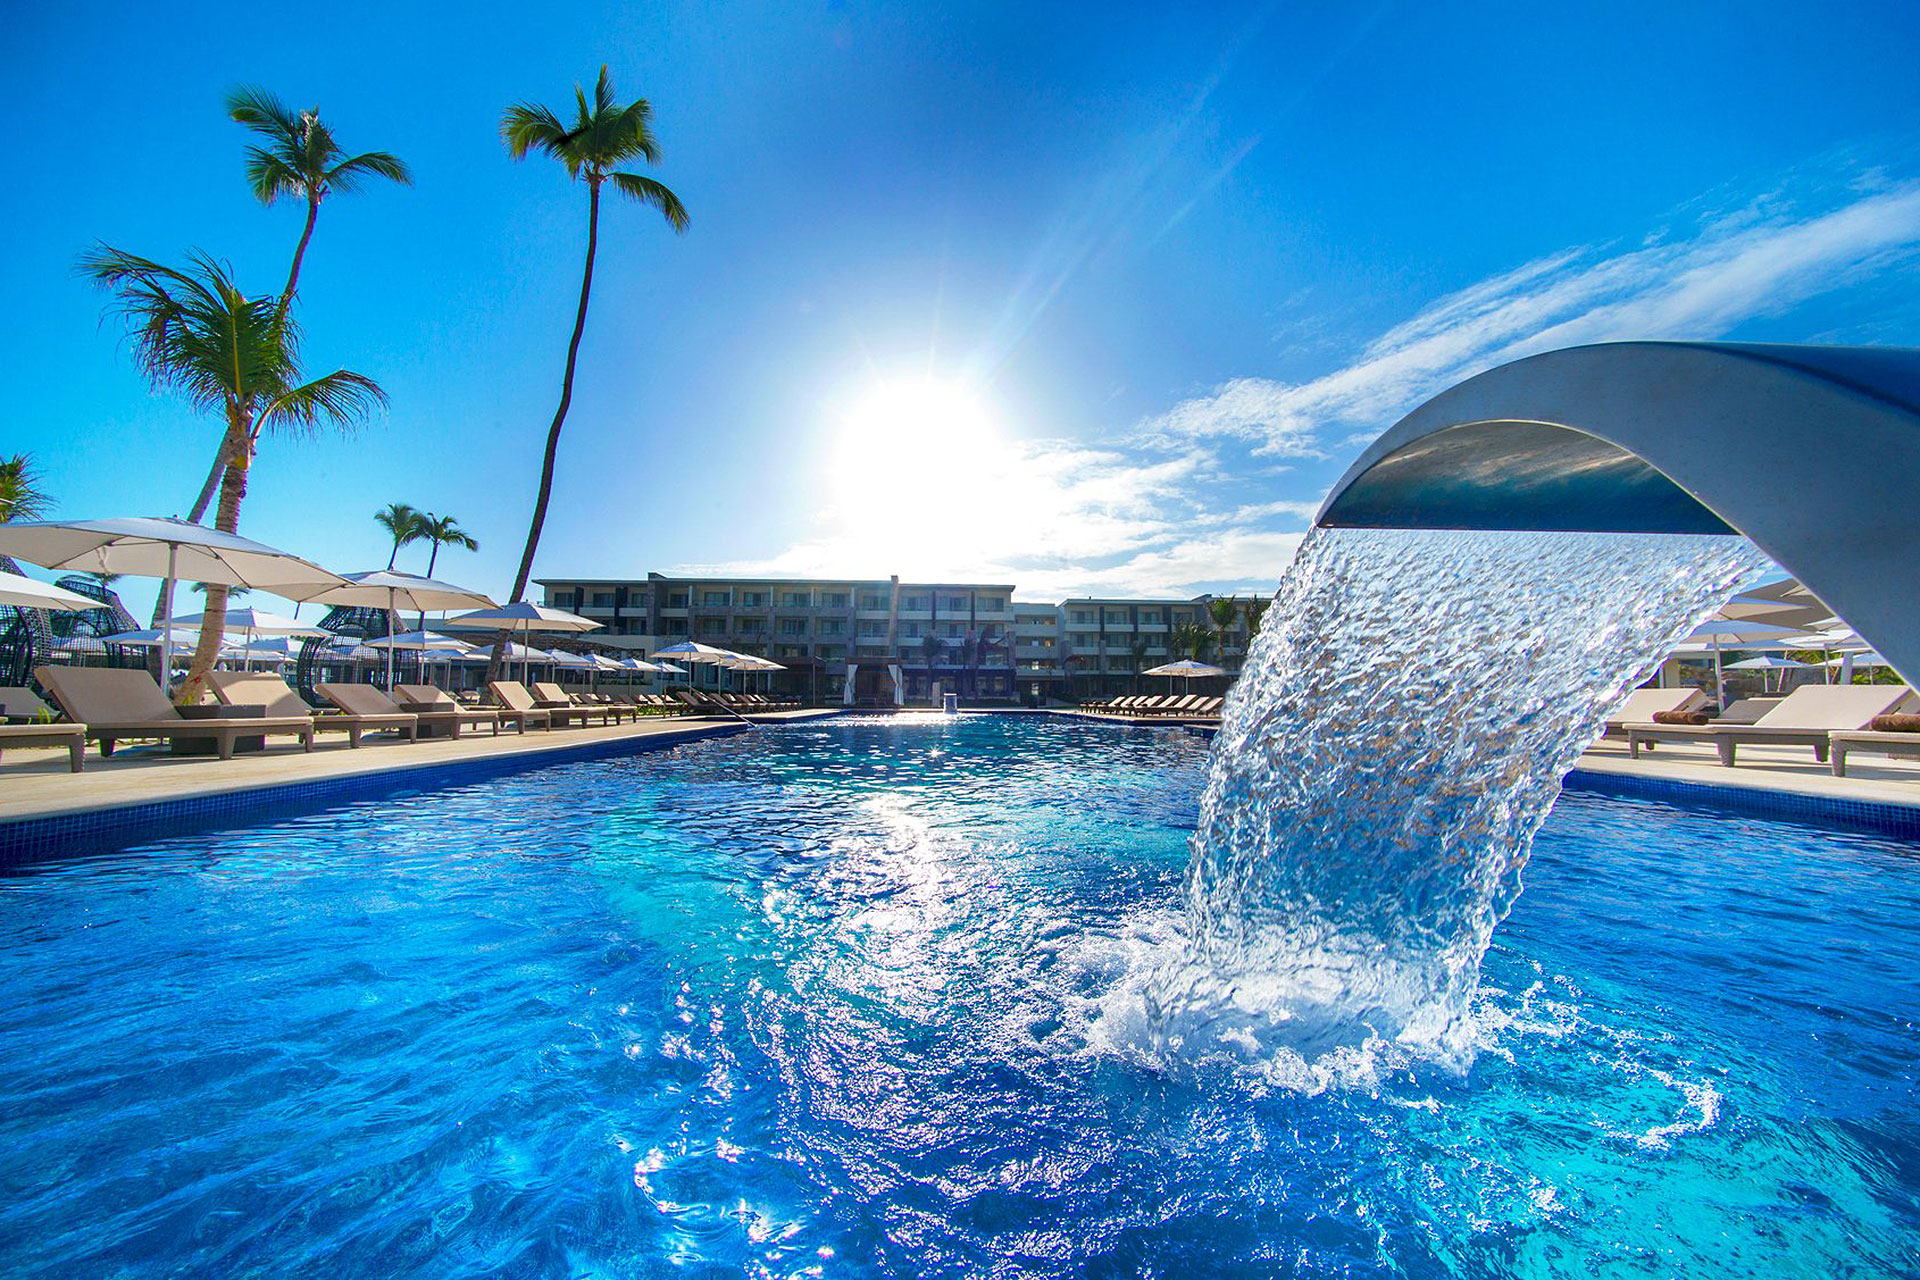 Pool at Royalton Bavaro Resort & Spa; Courtesy of Royalton Bavaro Resort & Spa